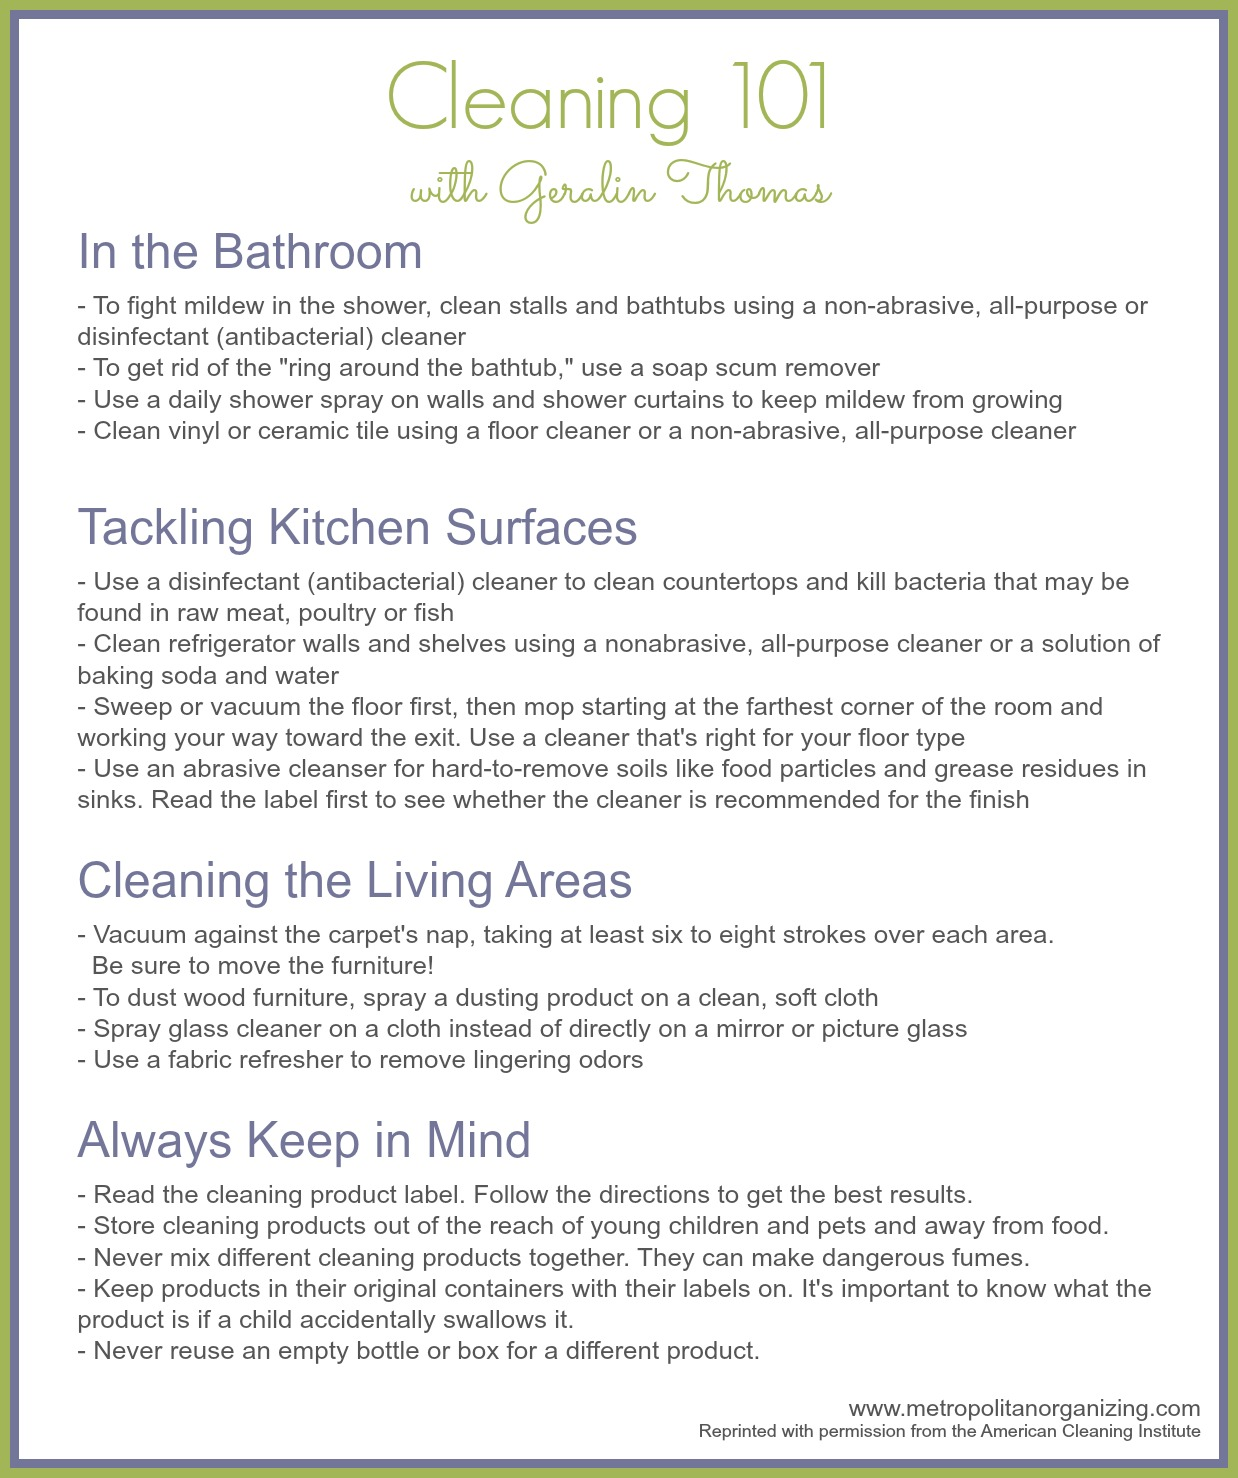 Learn Cleaning 101 with Professional organizer Geralin Thomas and